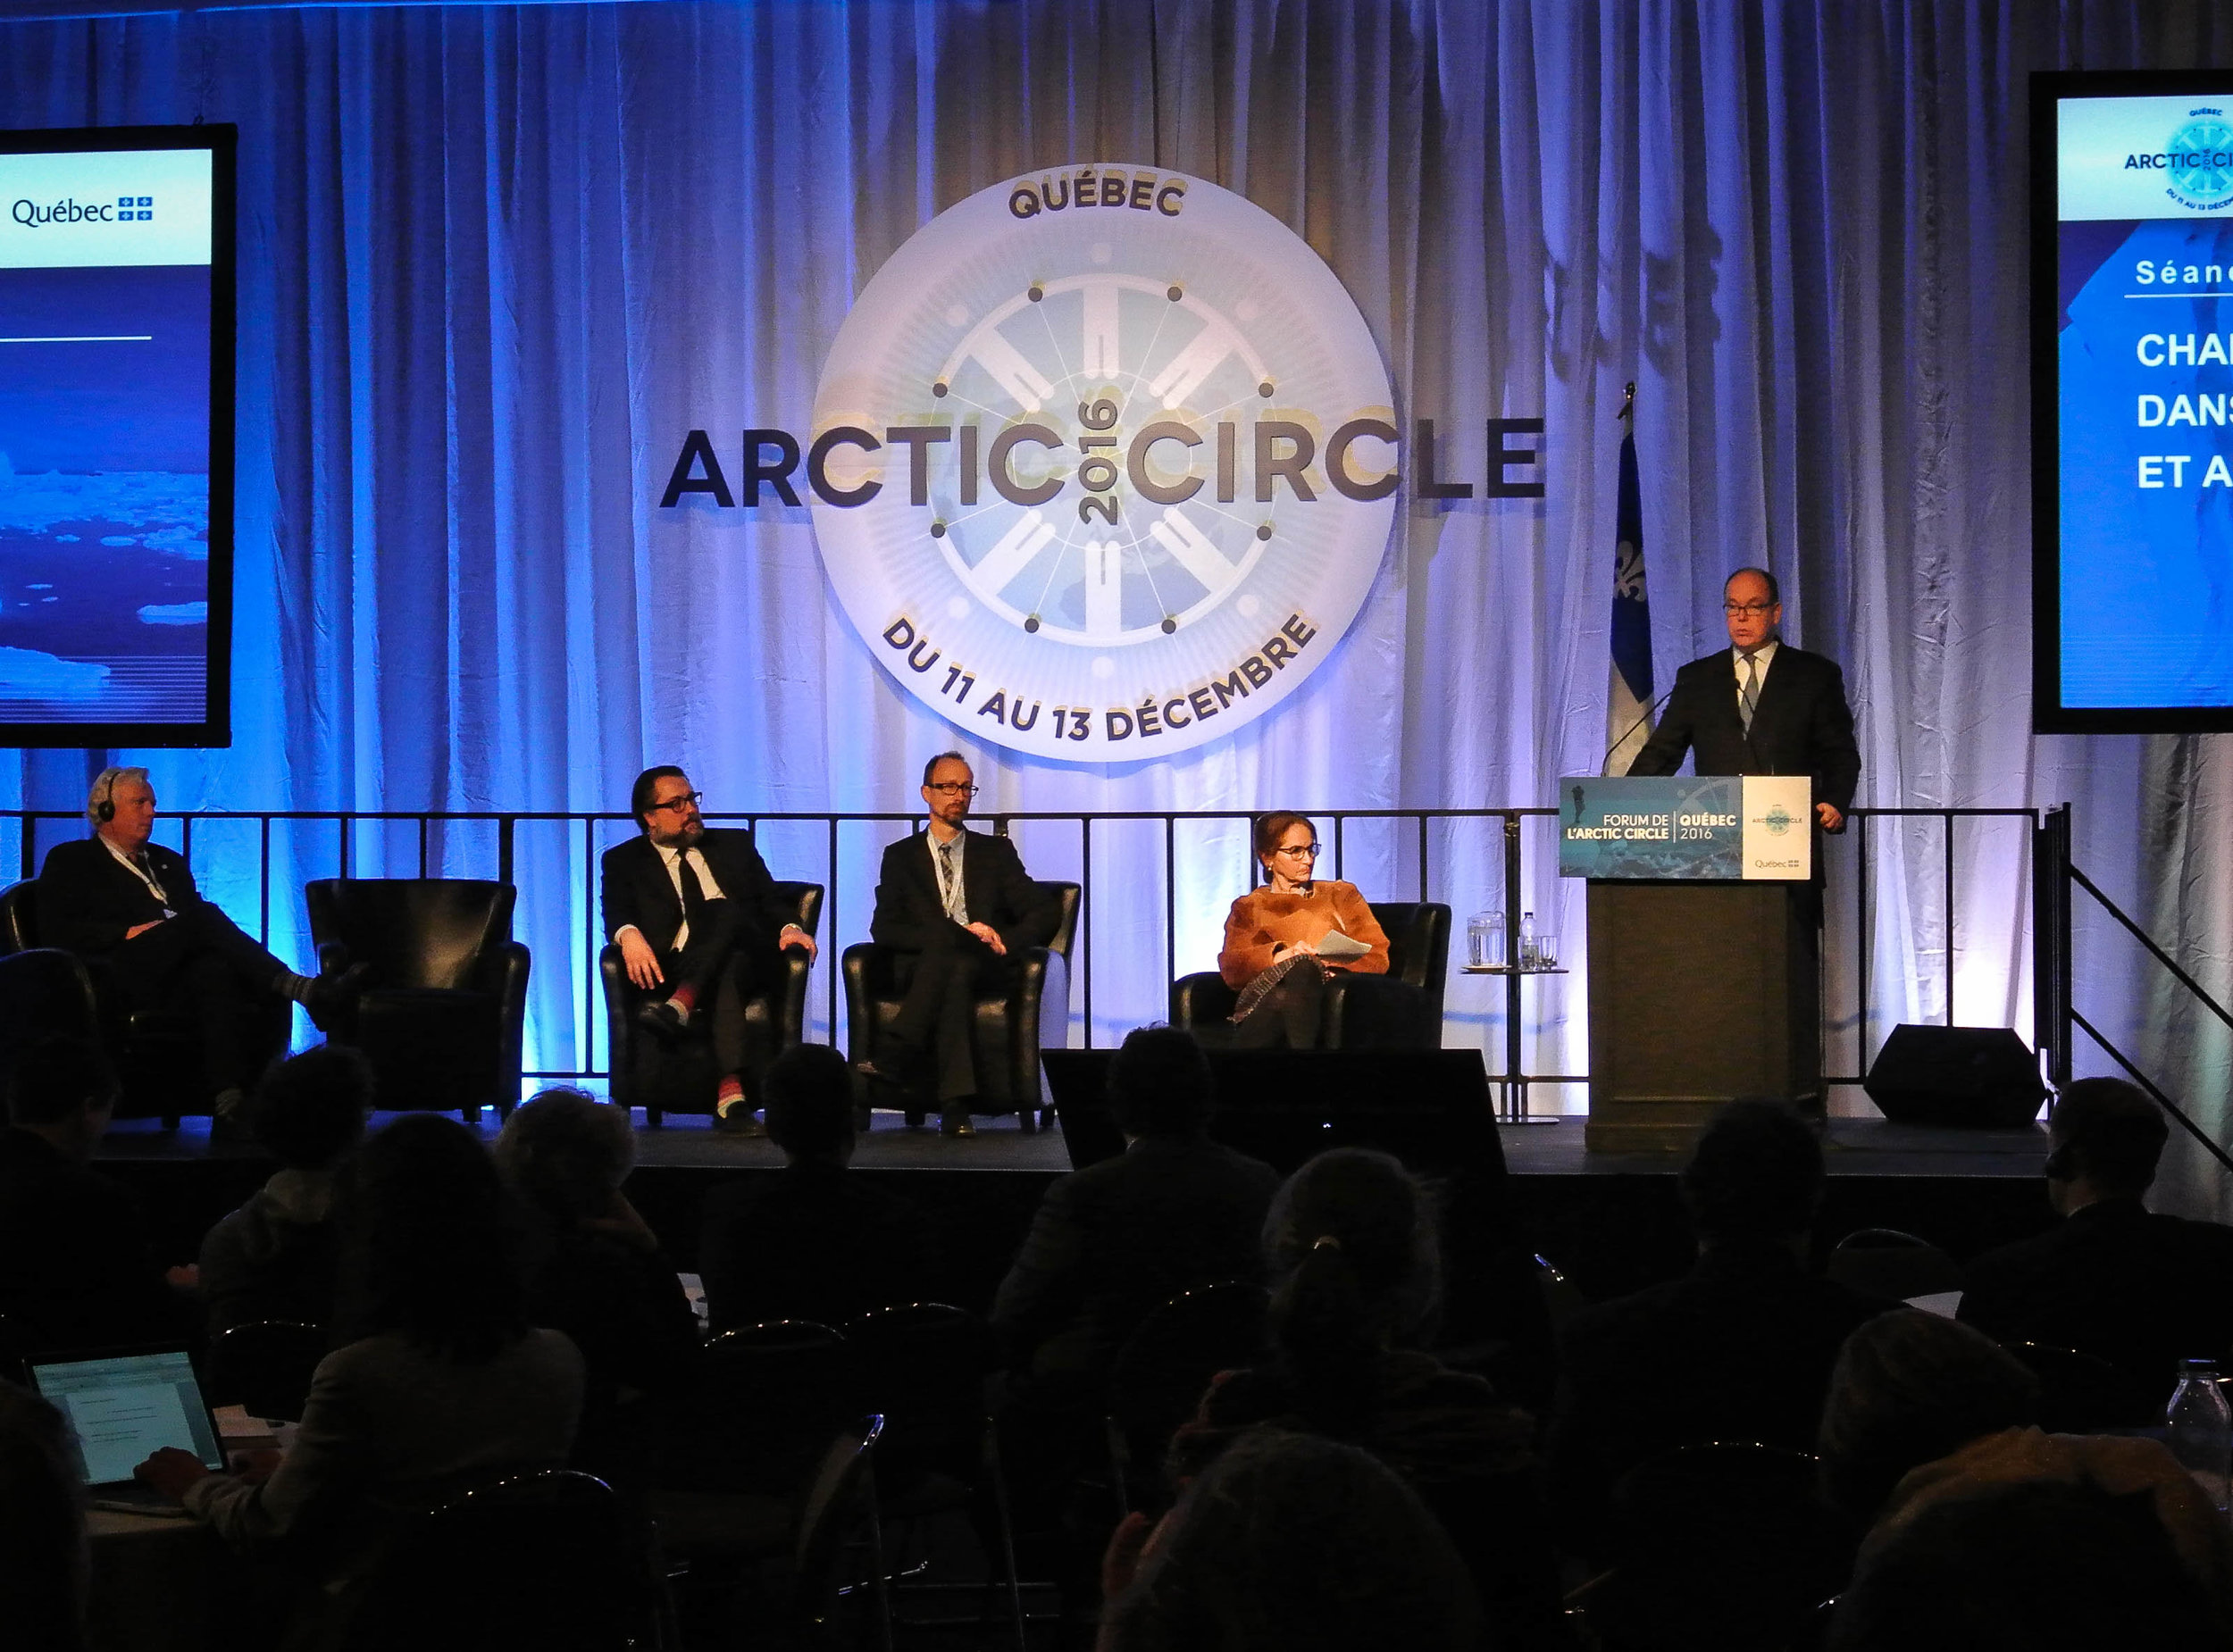 Prince Albert ll of Monaco speaking at an Arctic Circle Forum in Quebec, Canada in 2016. JONAA©Vilborg Einarsdottir